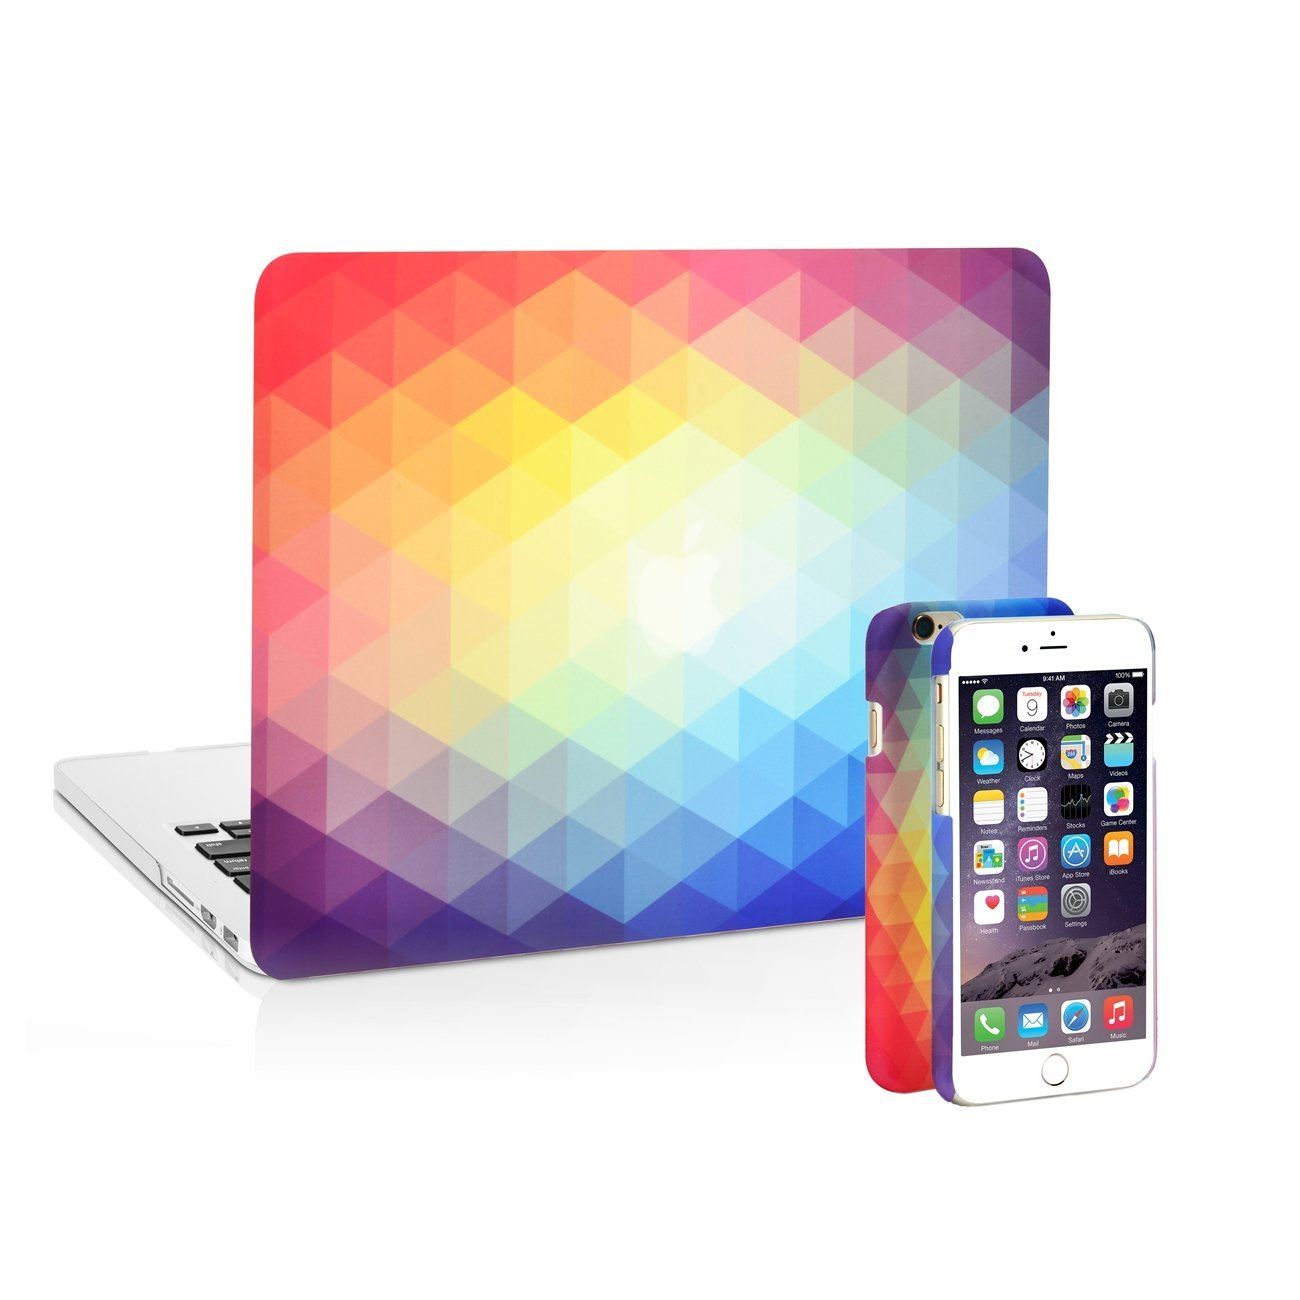 "UNIK CASE-2in1 iPhone (6/6s) Case with Matching Gradient Ombre Graphic Hard Shell Case for Retina 13"" Macbook Pro (A1502/A1425)"